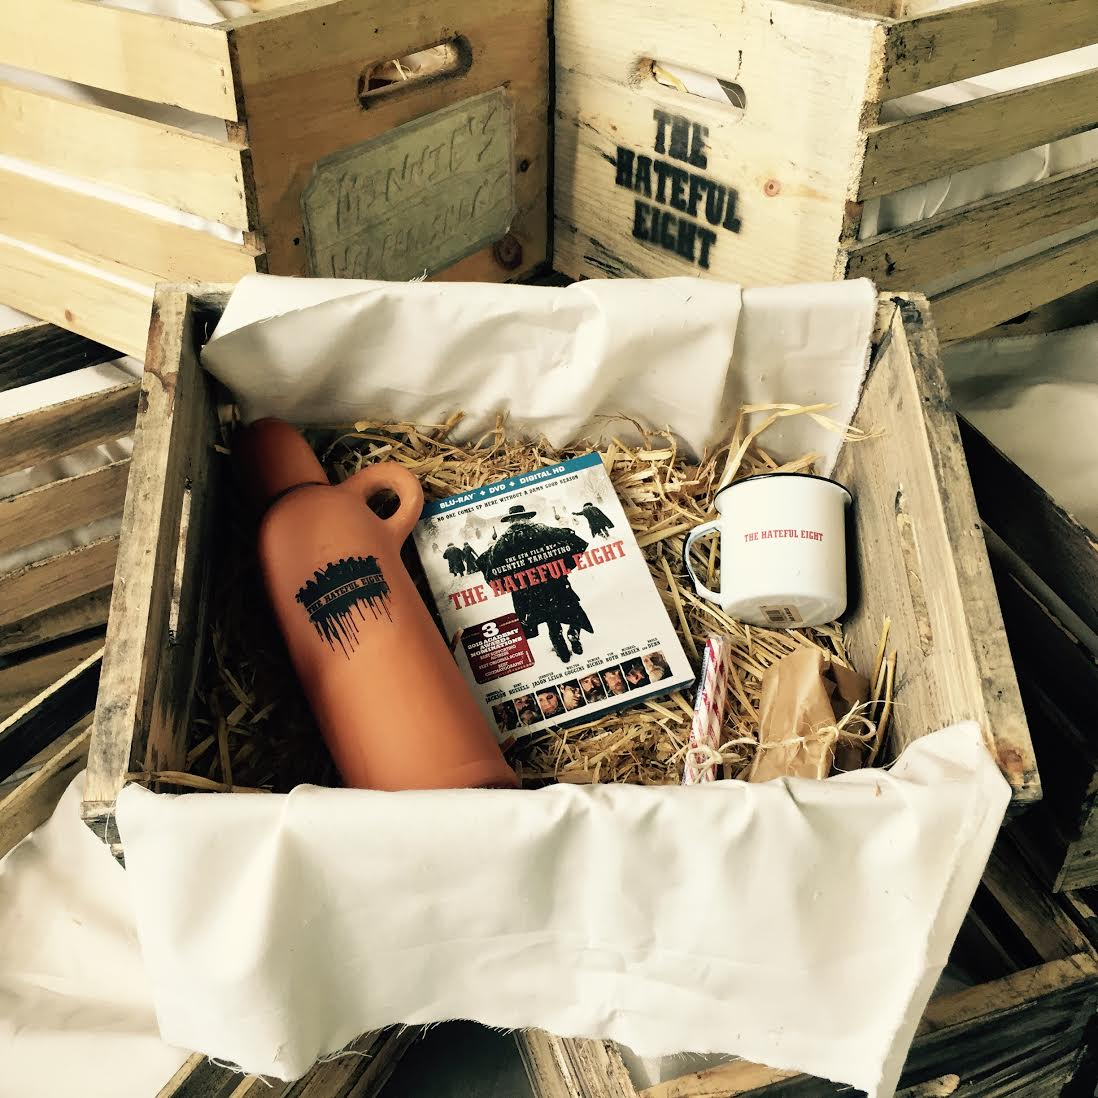 Bring a piece of @thehatefuleight home! RT w/ the hashtag #HatefulCrate for your chance to win! (US entries only) https://t.co/FykDr3ByTC